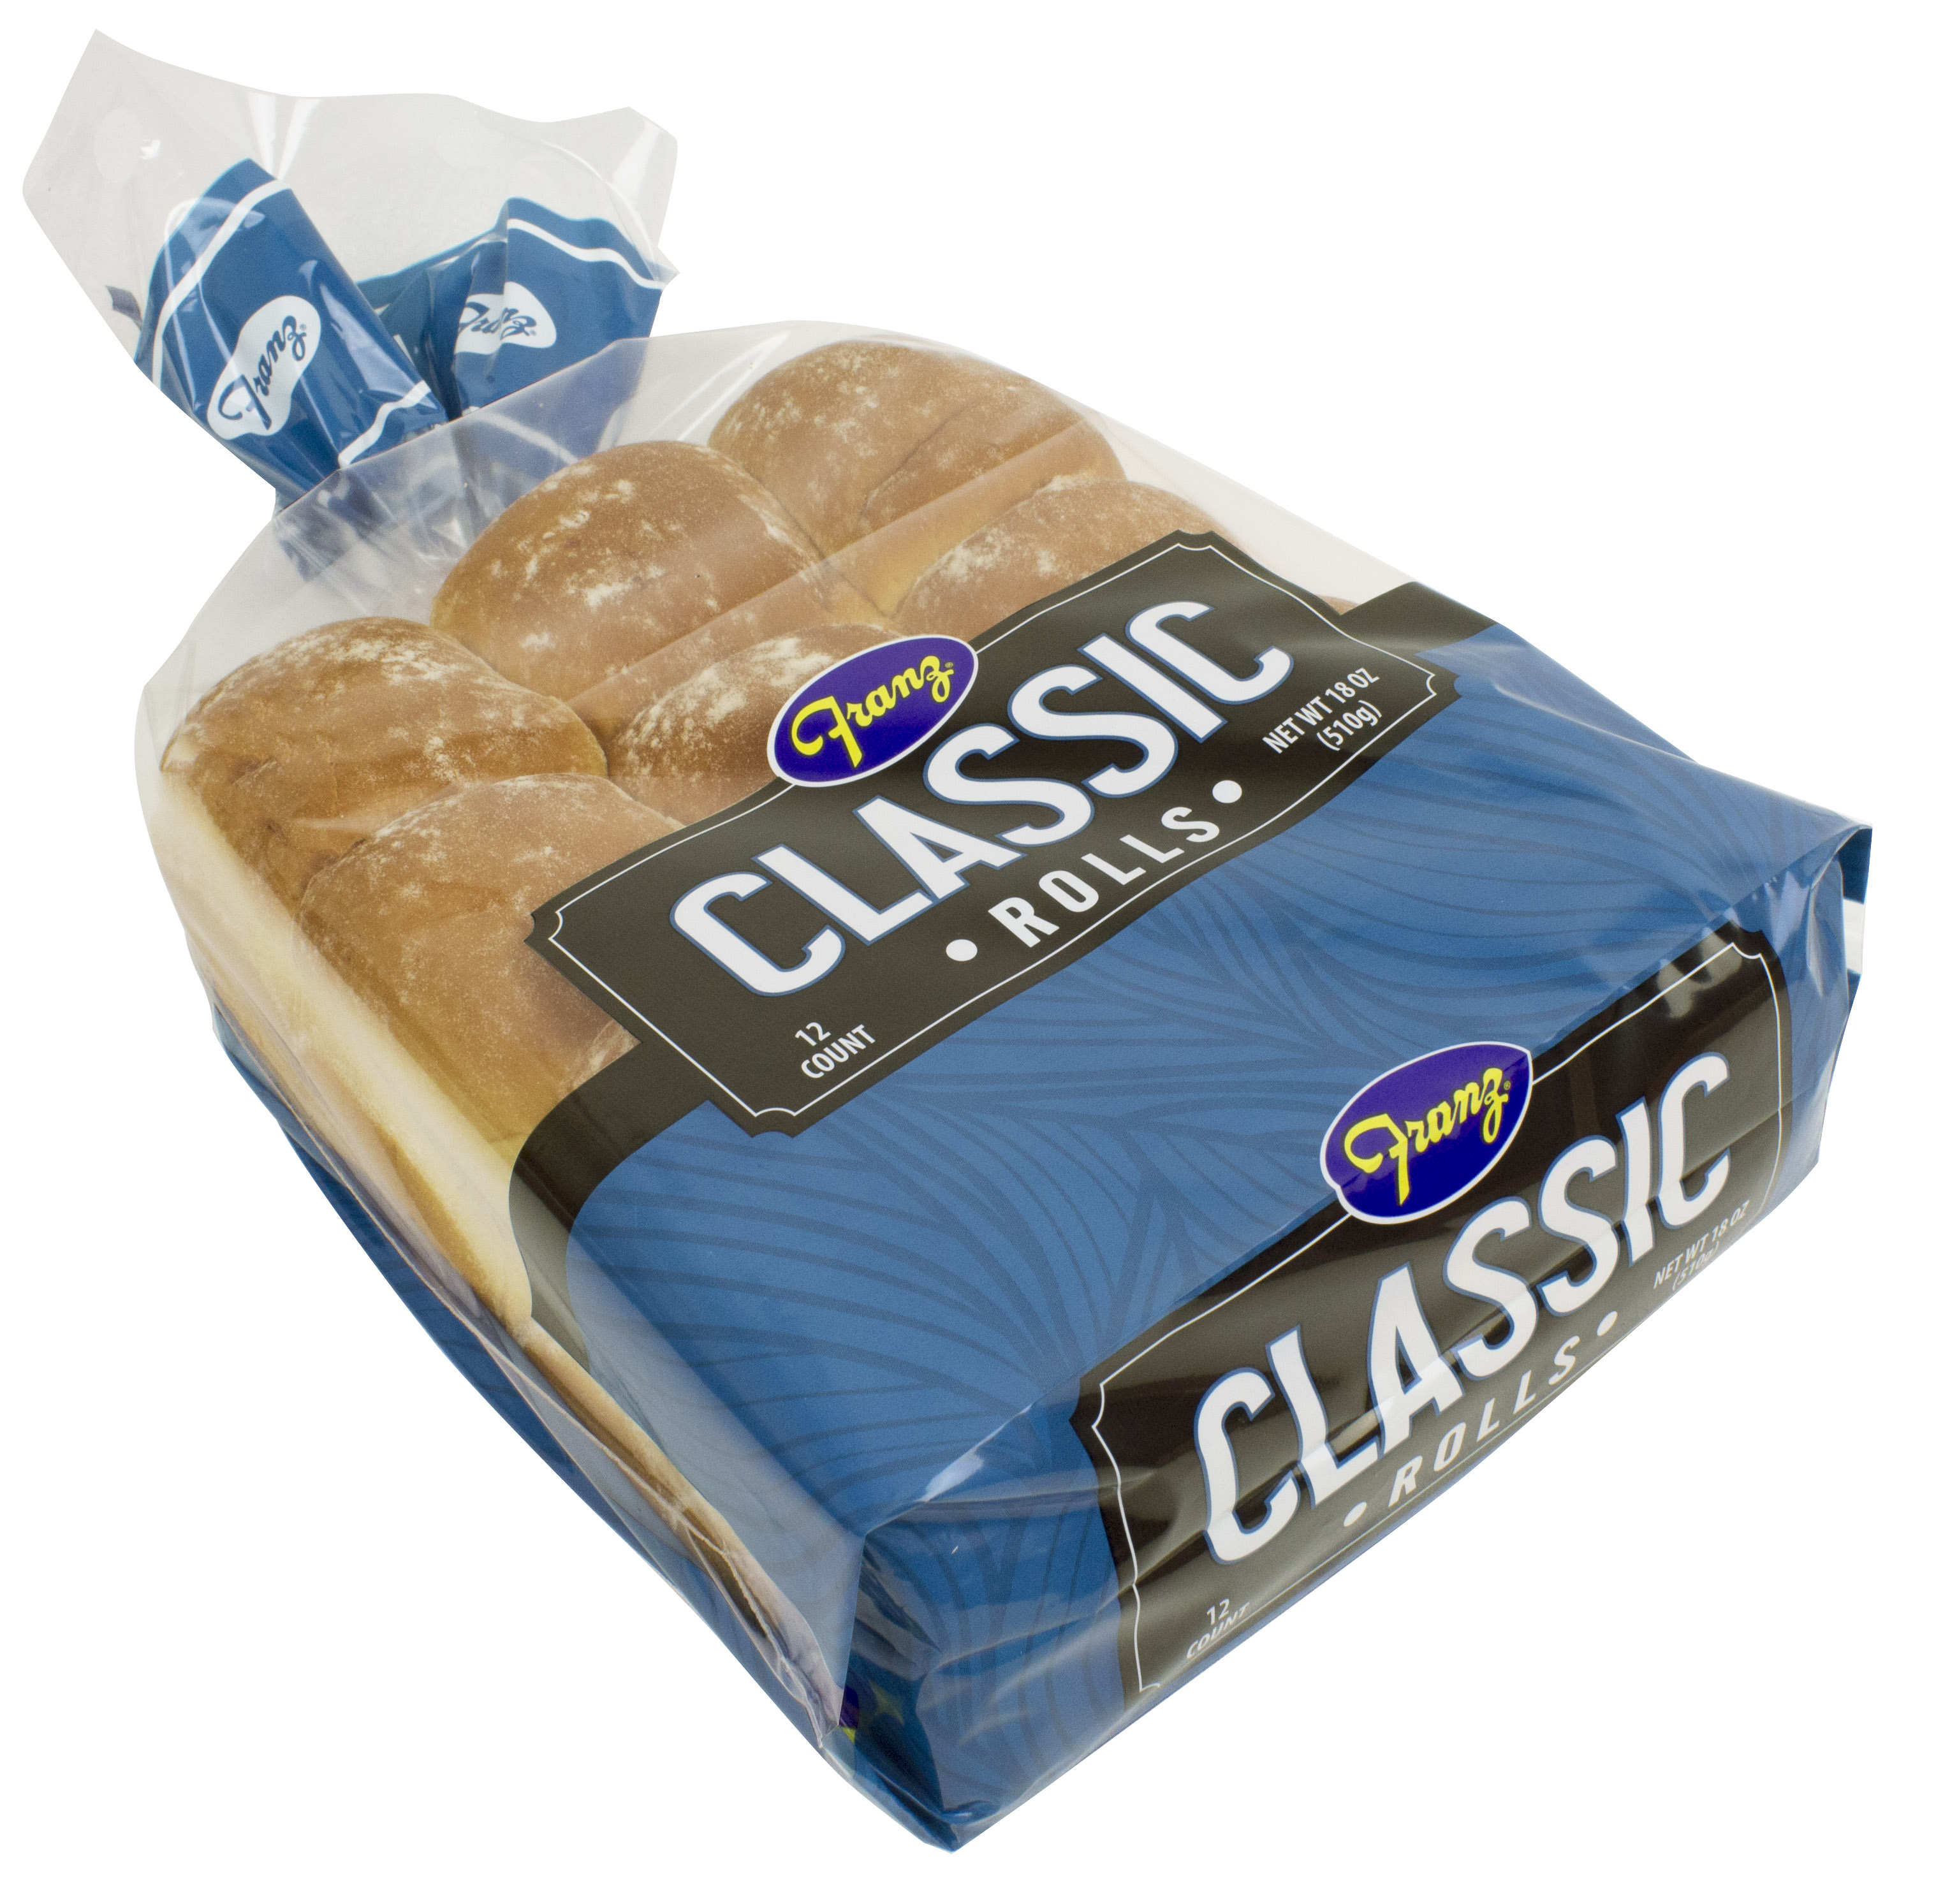 Franz Classic Dinner Rolls, 12 ct, 18 oz